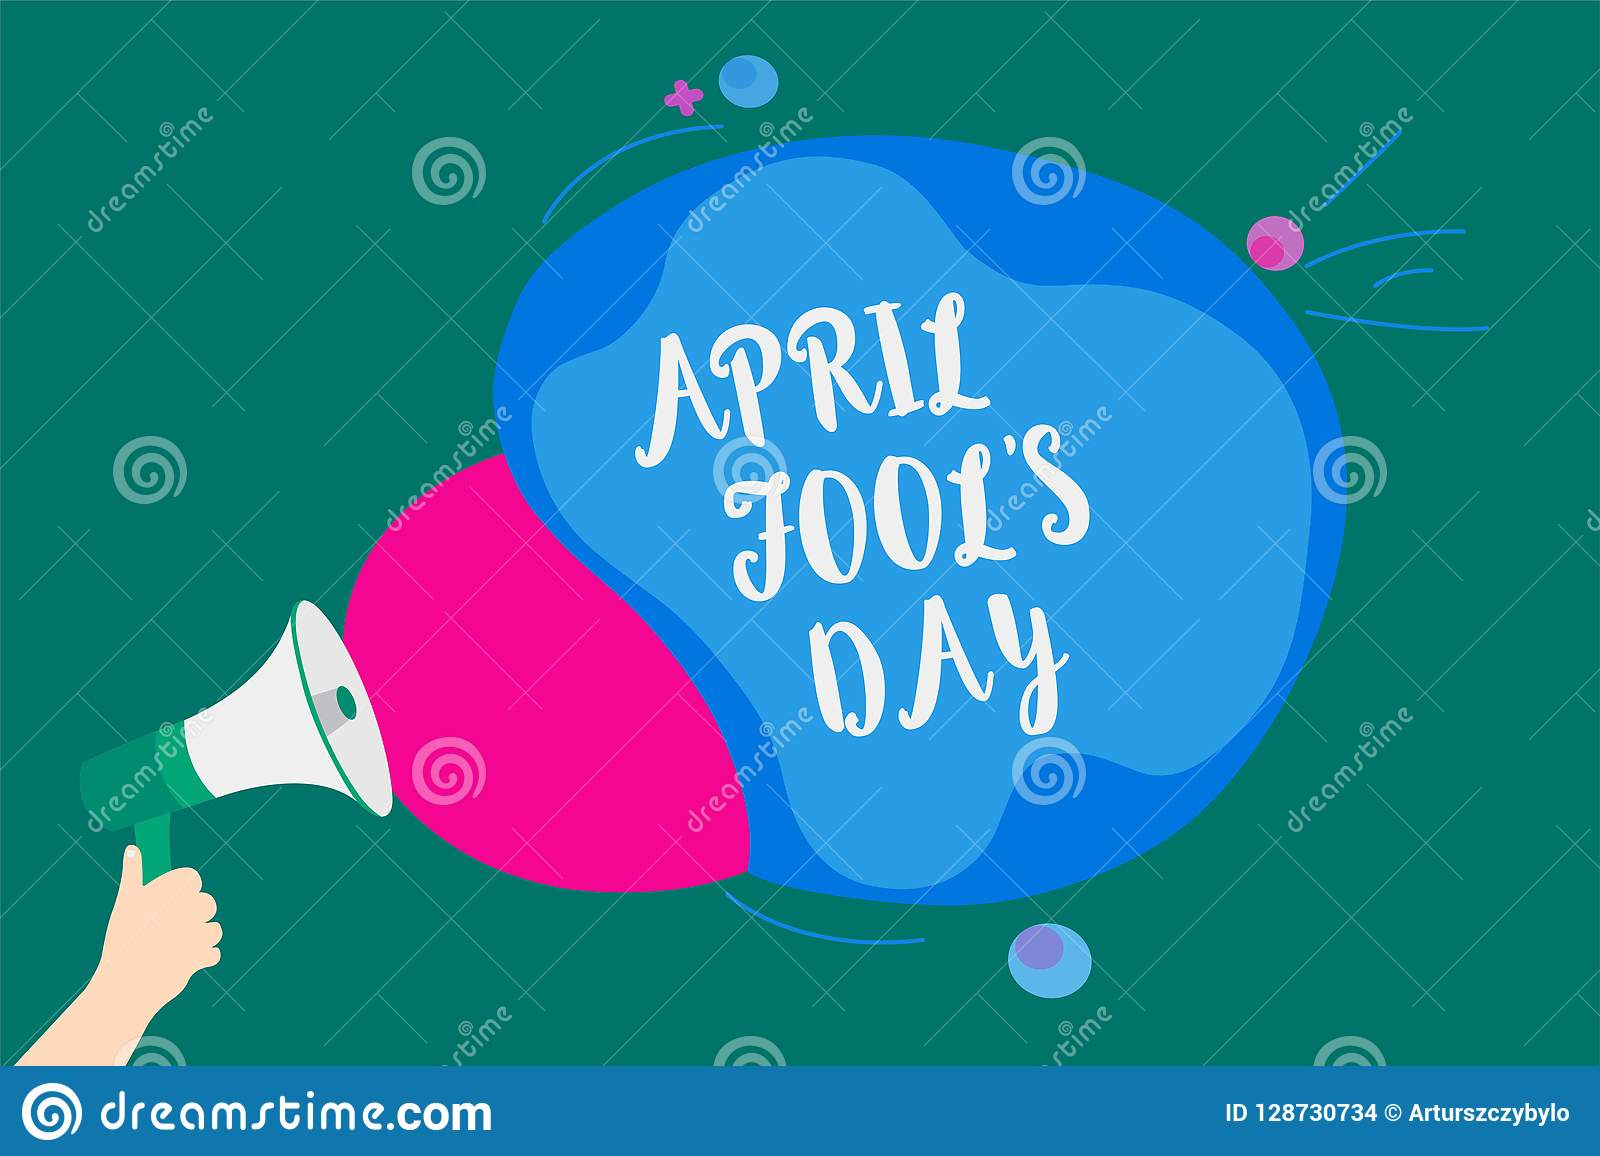 Word writing text April Fool s is Day. Business concept for Practical jokes humor pranks Celebration funny foolish